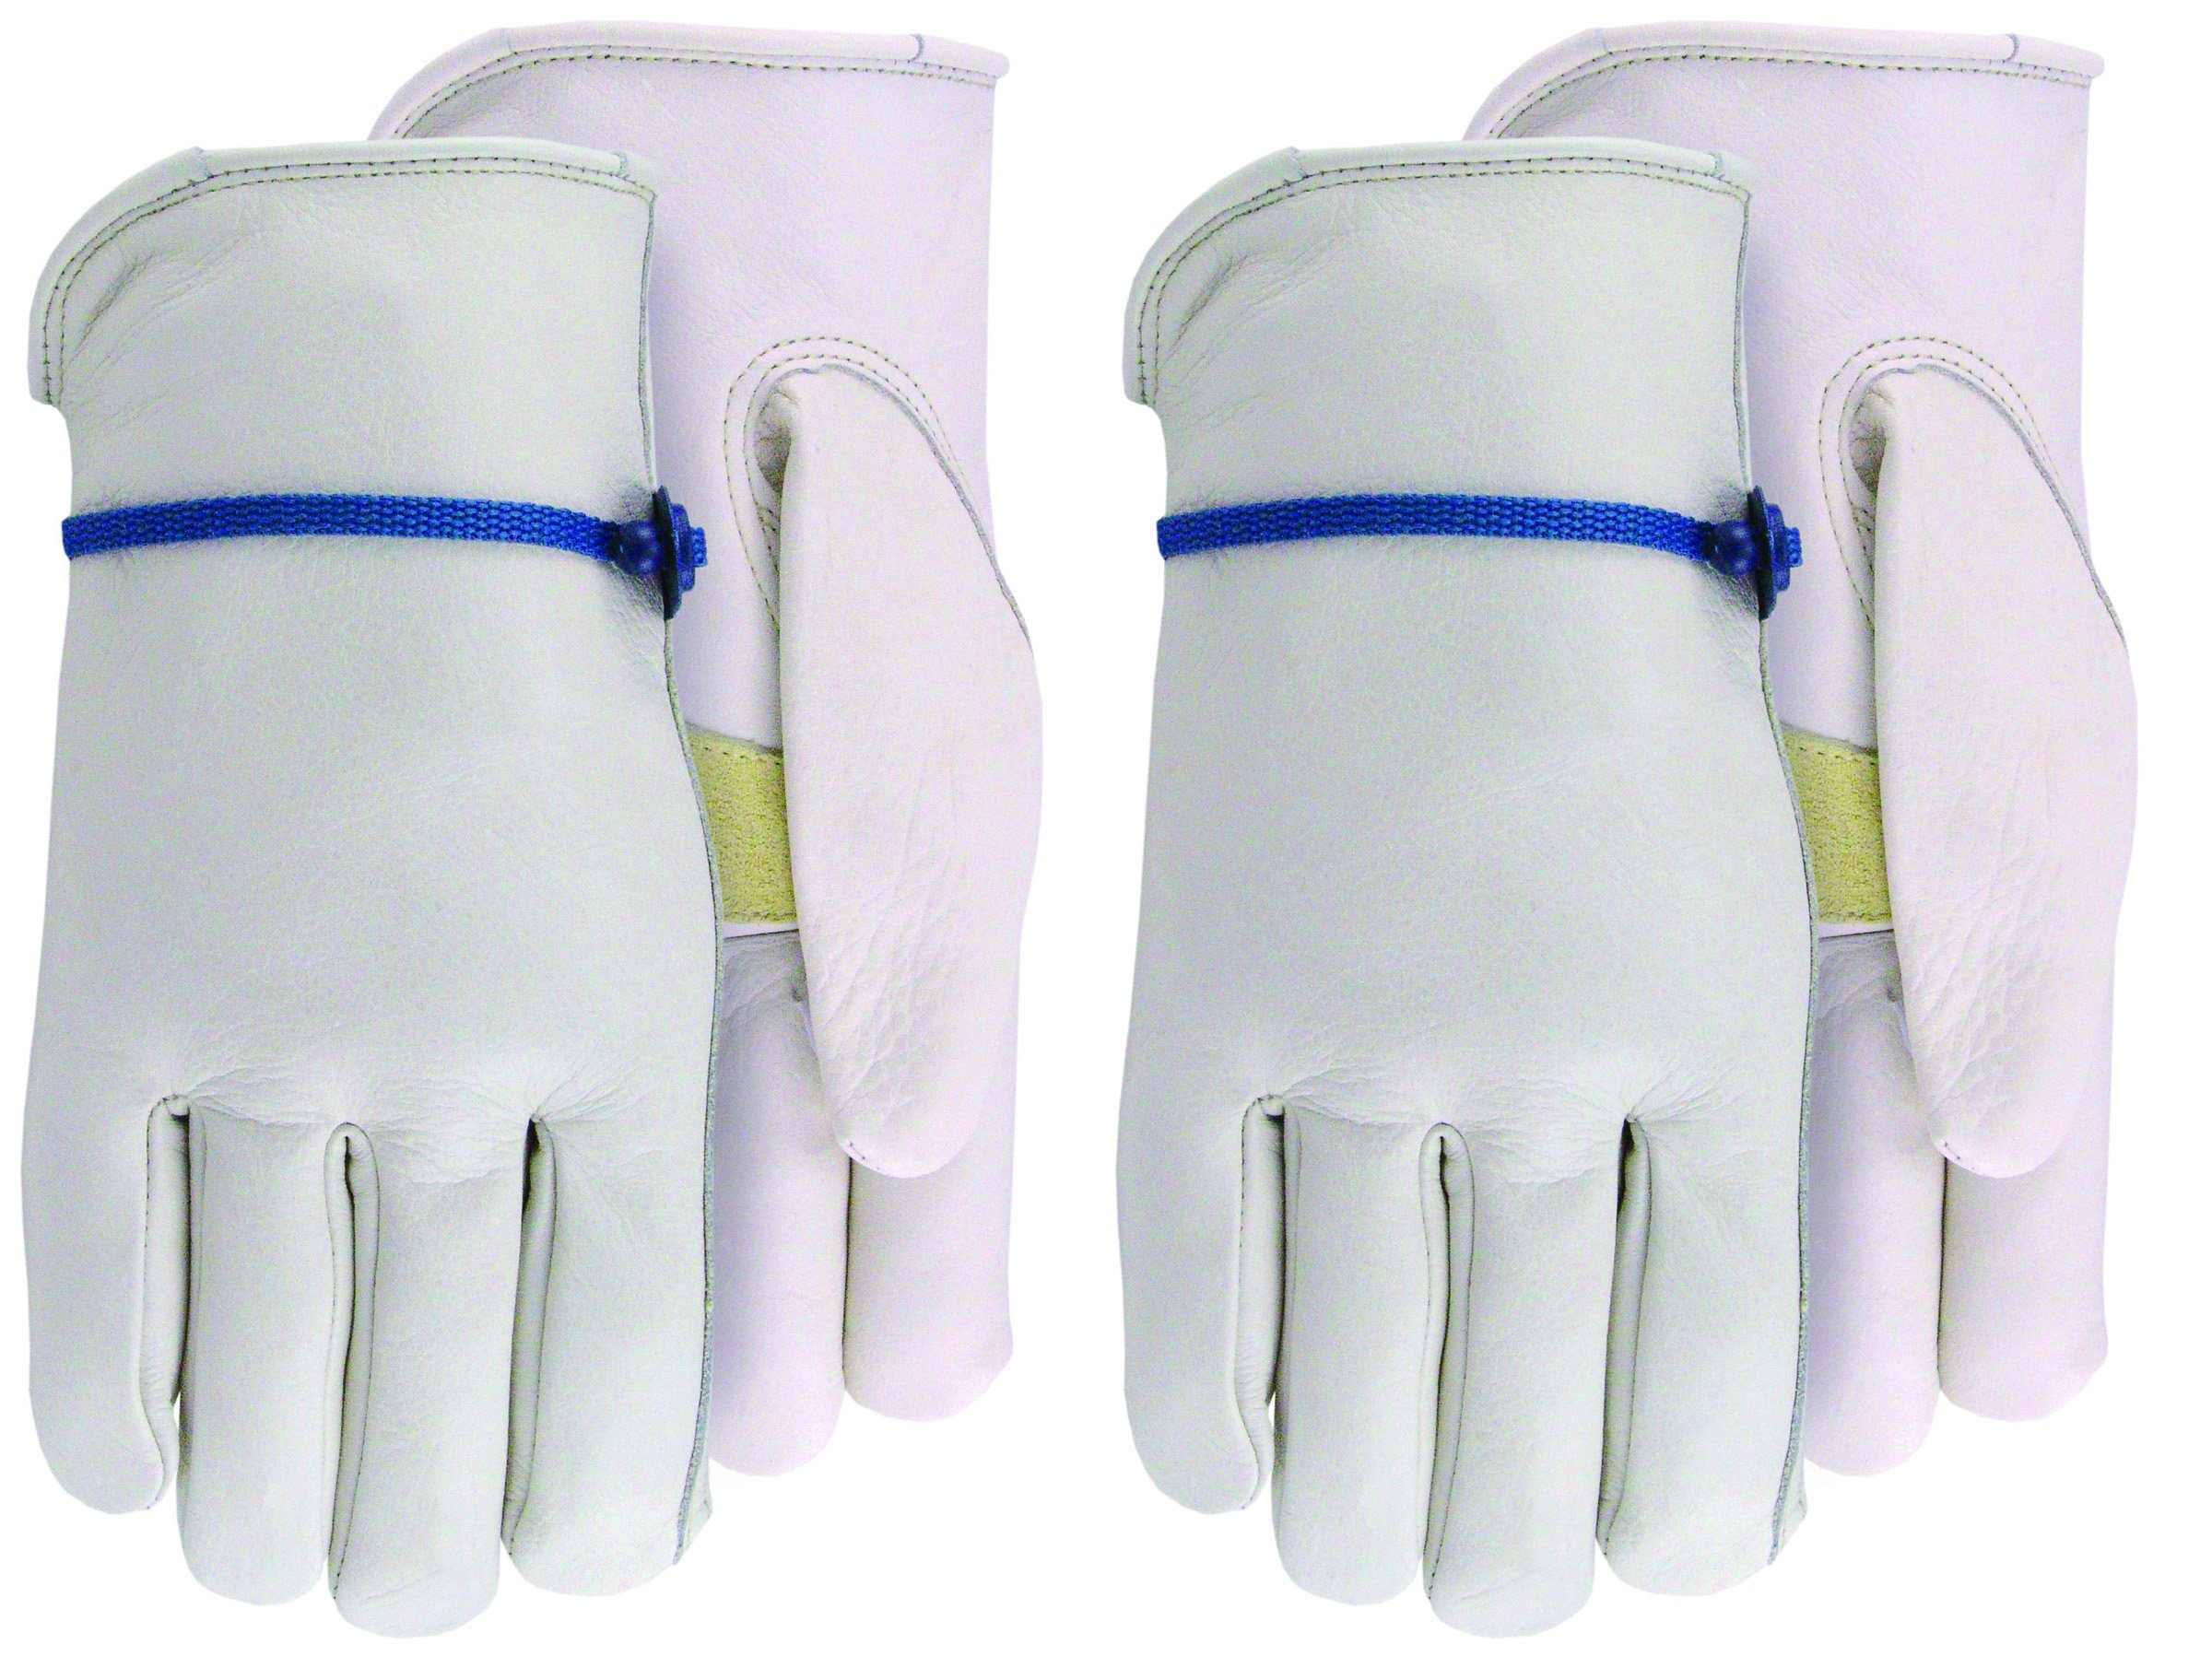 Cowhide Leather Garden Gloves with Ball and Tape Cinch at Wrist, 2929B1, Size: Small